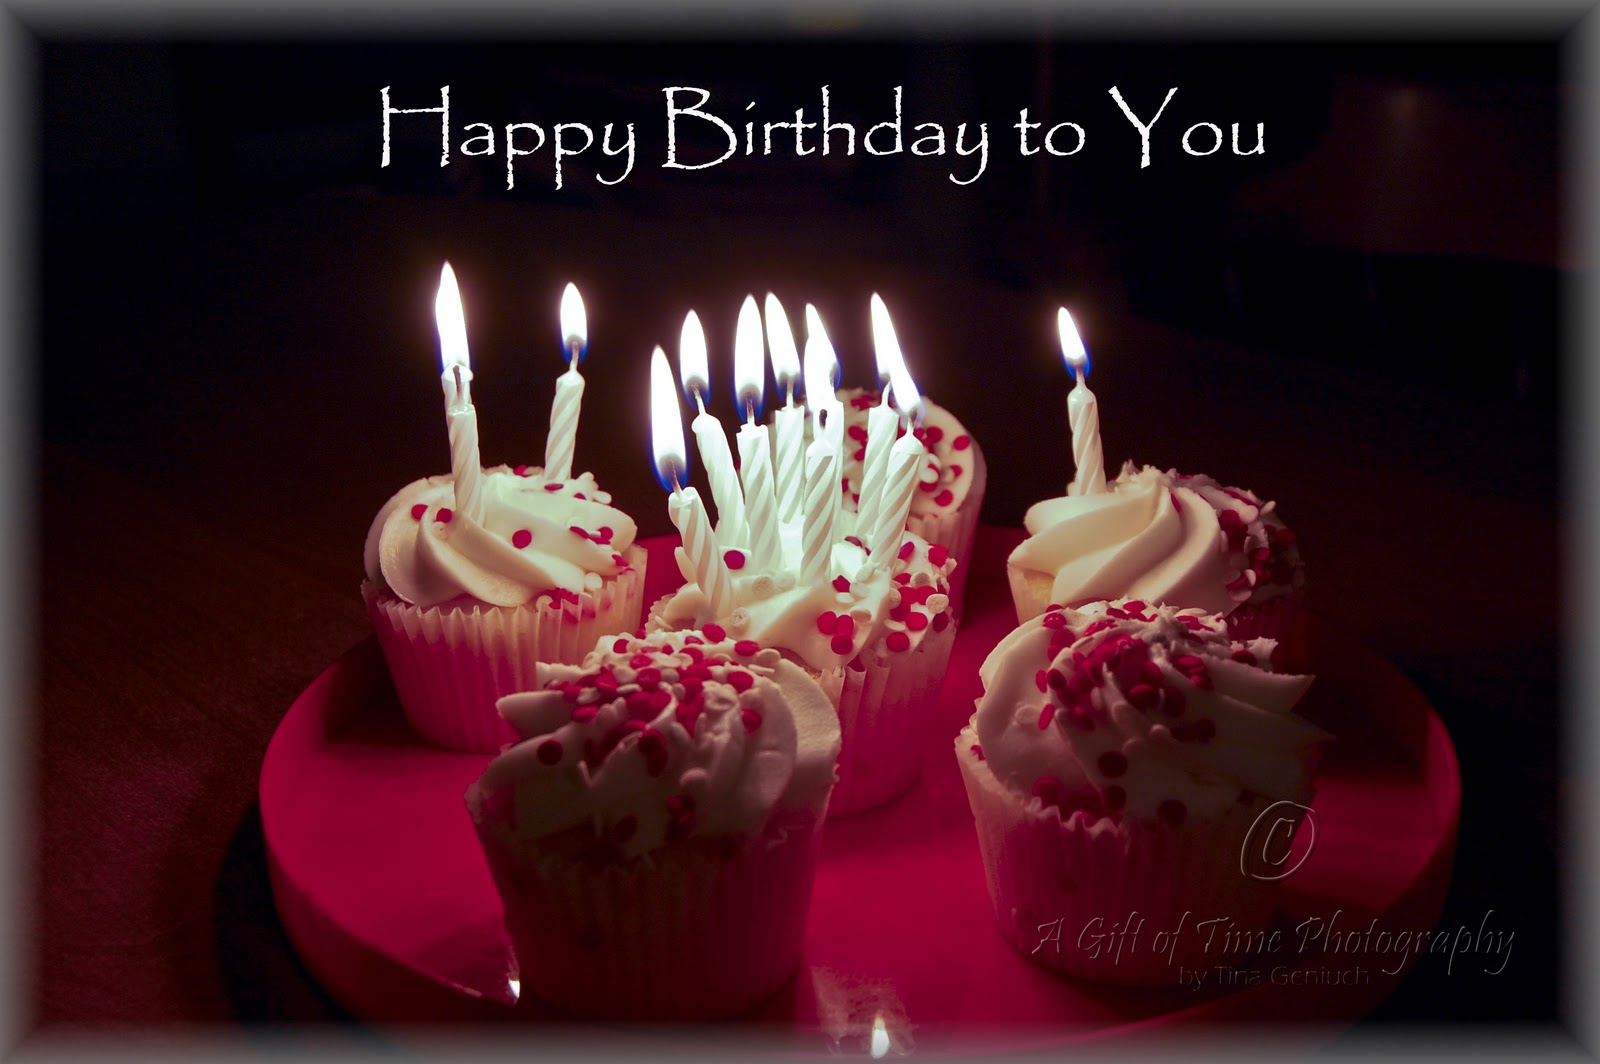 birthday wishes for friend images free download ; Birthday-Cake-Wishes-For-Best-Friend-Pictures